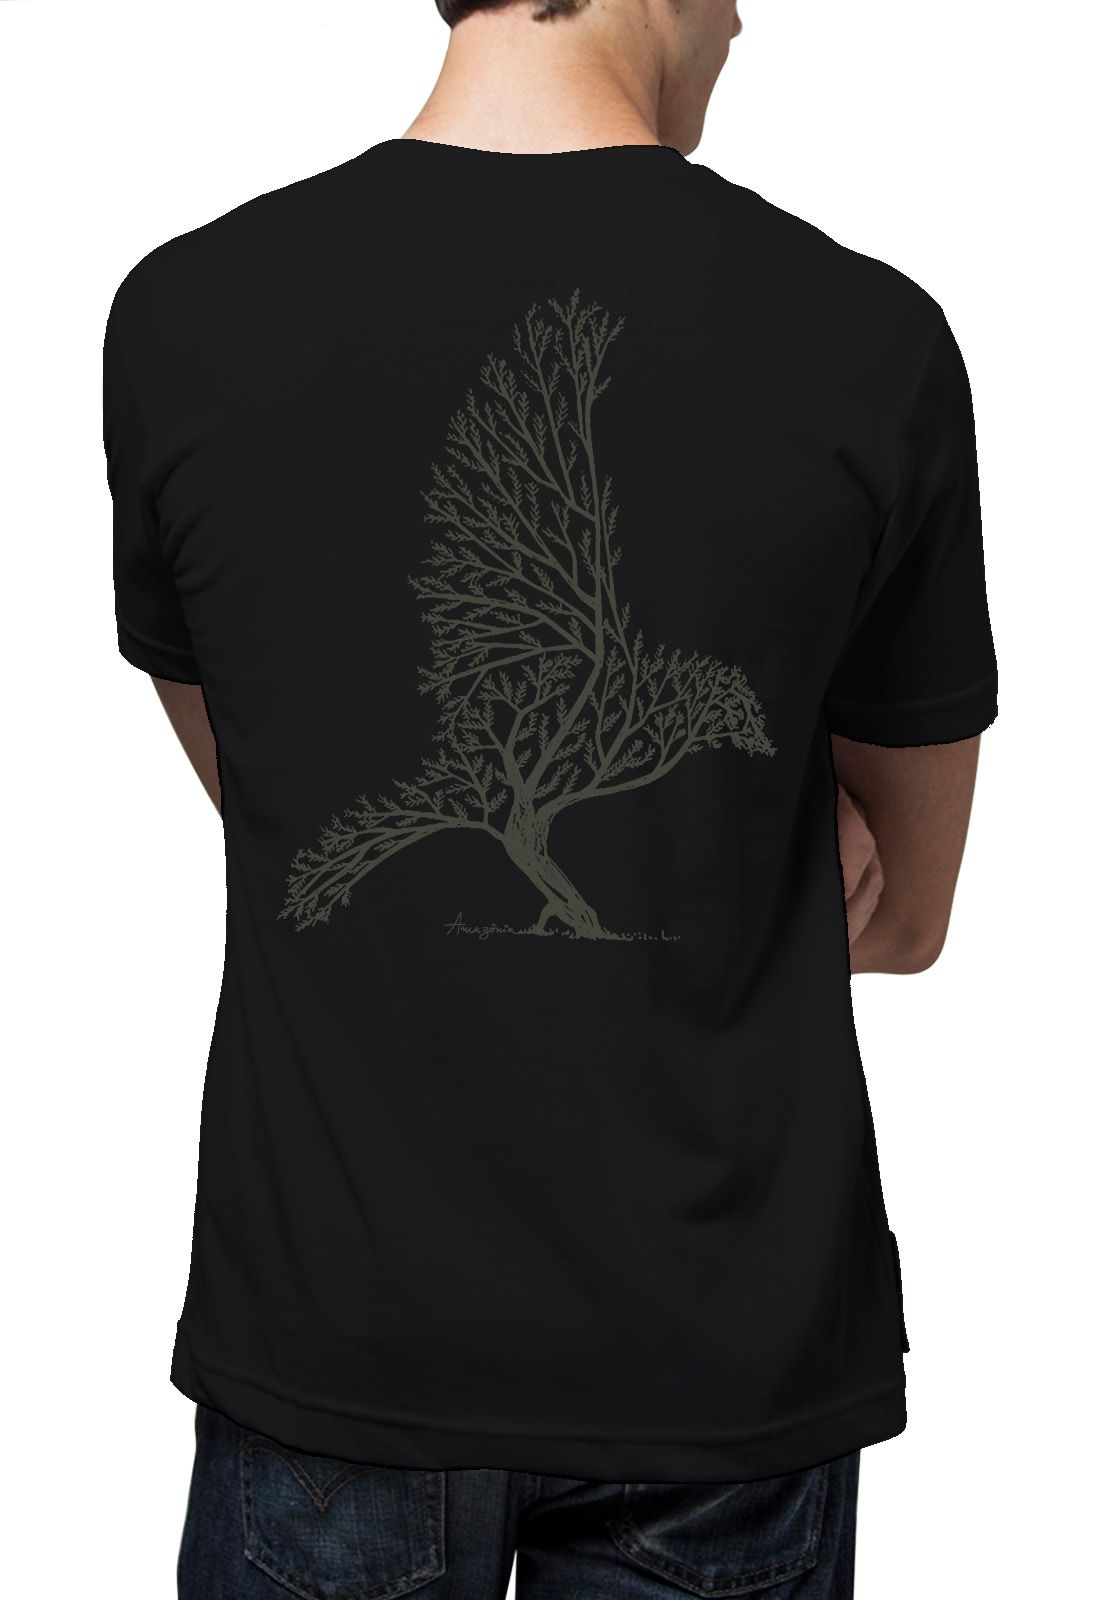 Camiseta Amazônia Bird Tree - Preto